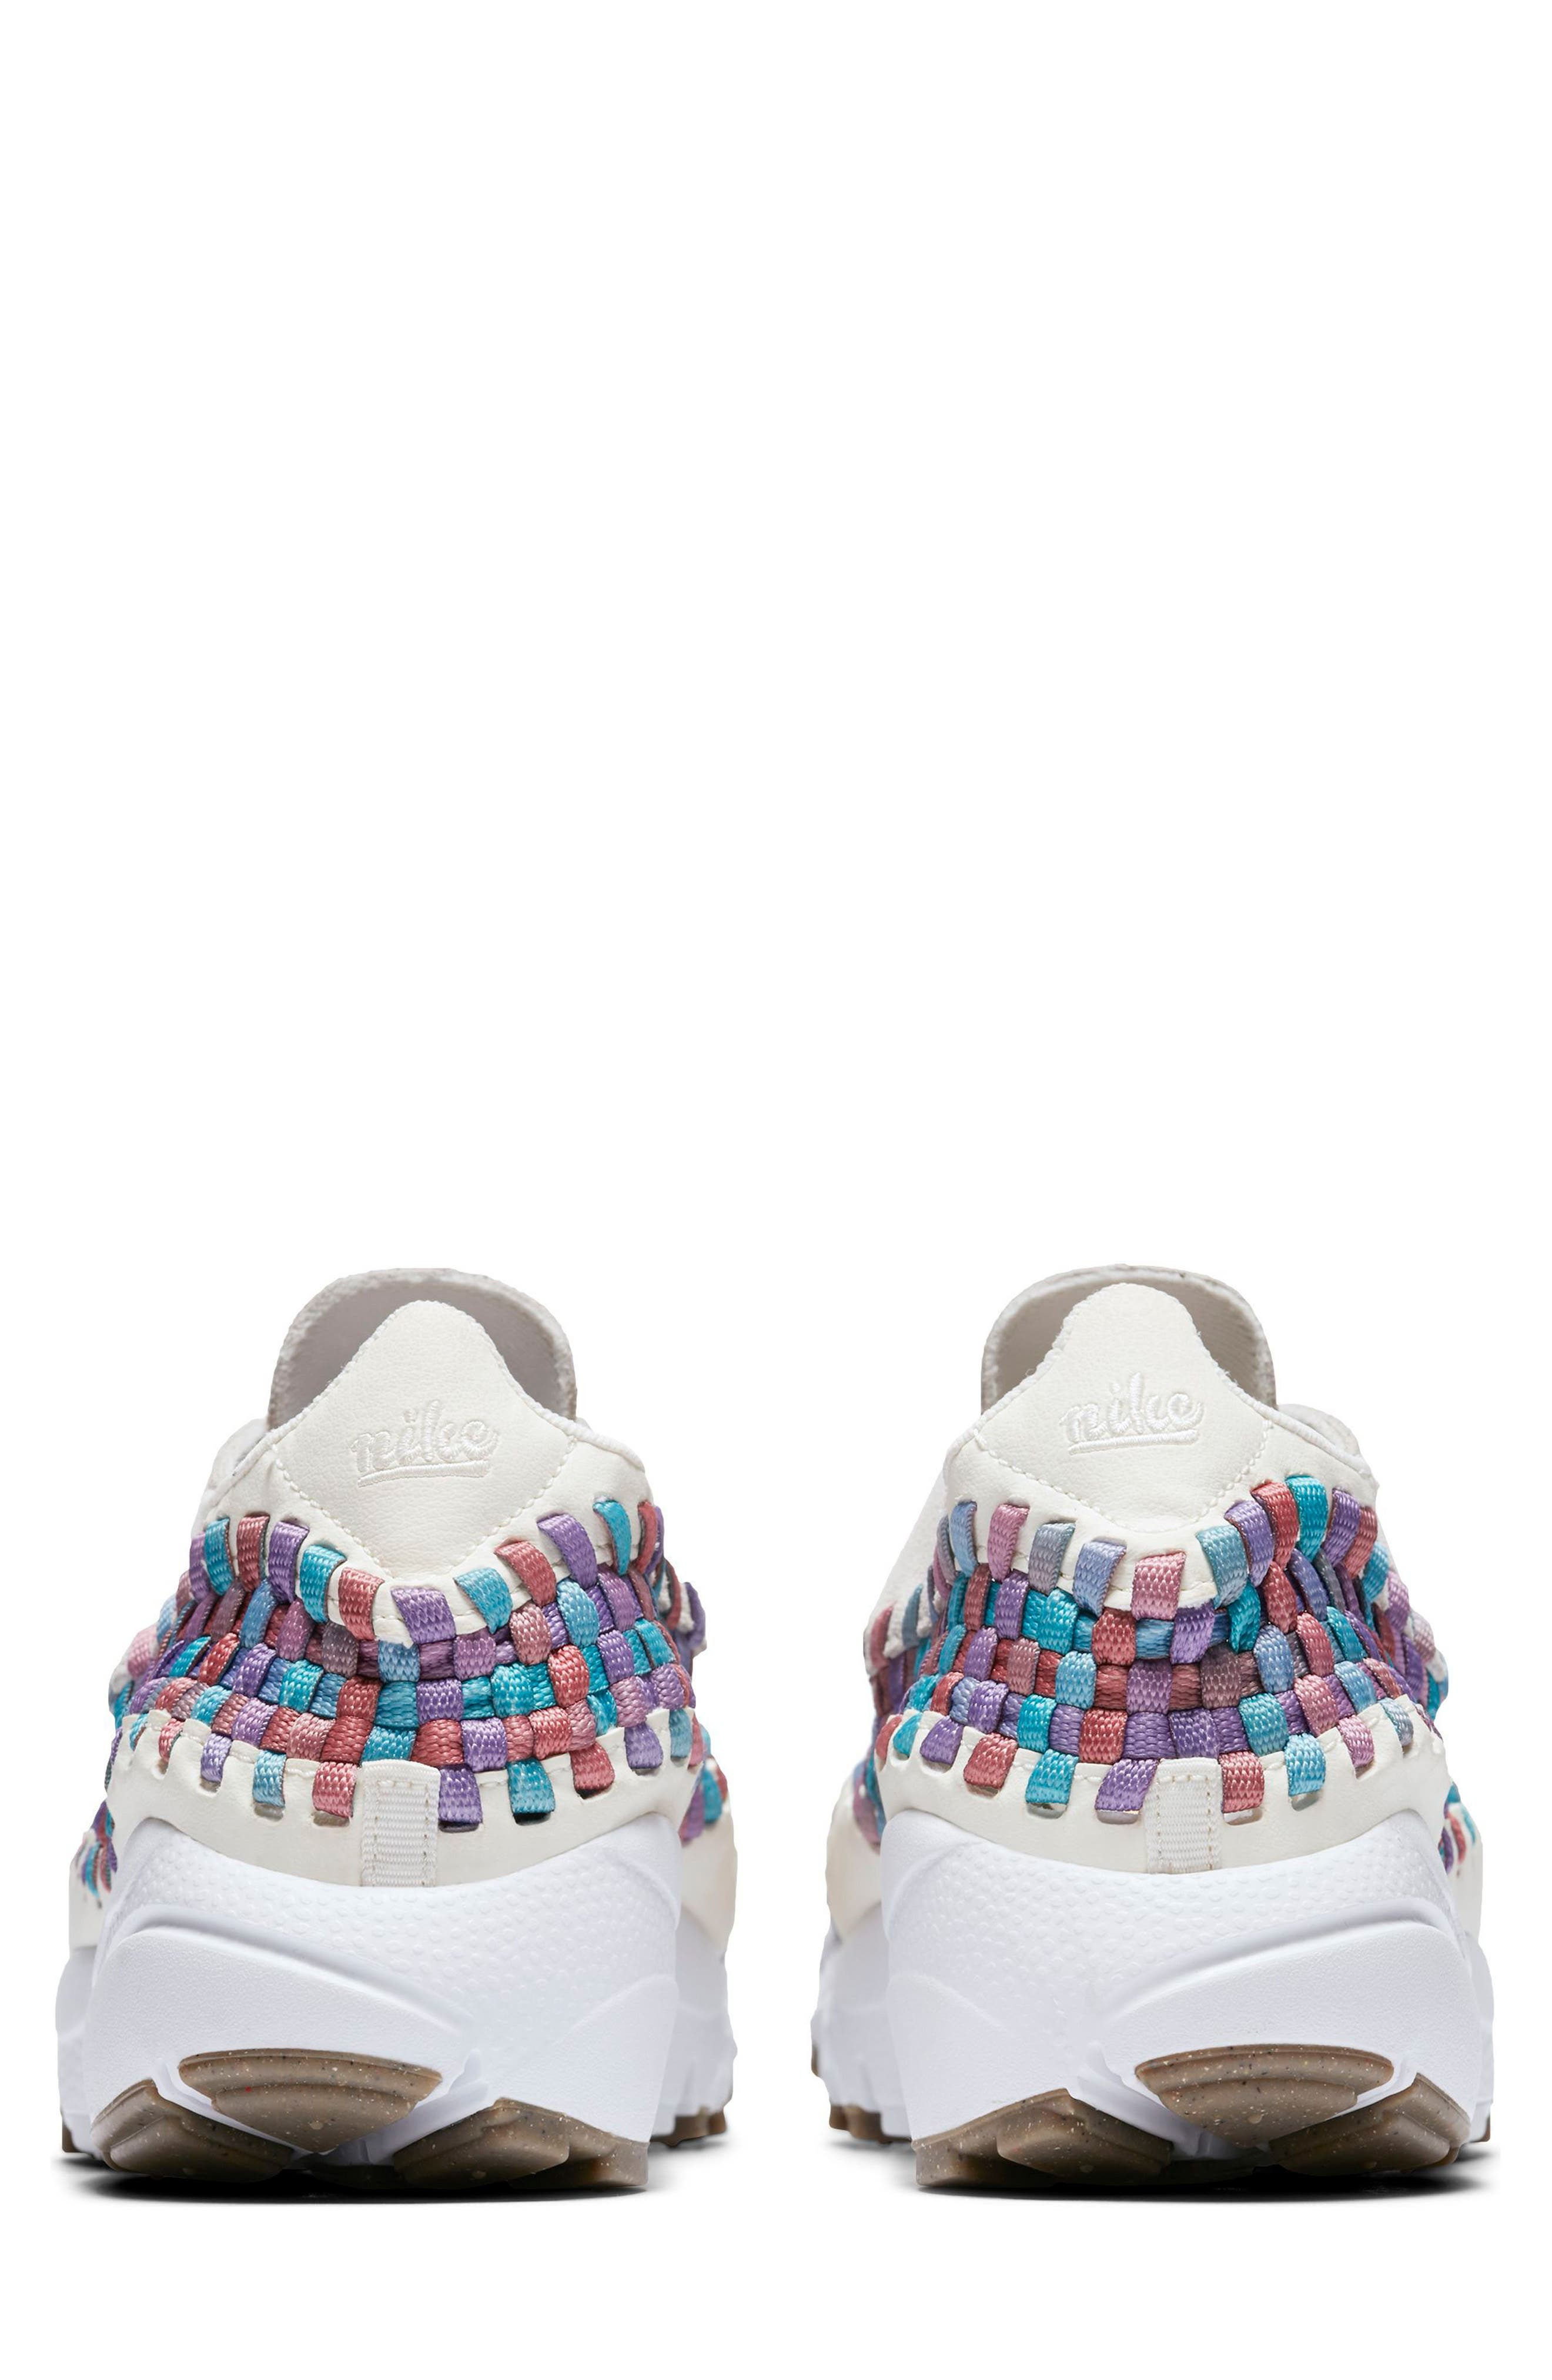 Air Footscape Woven Sneaker,                             Alternate thumbnail 4, color,                             Sail/ White/ Red/ Teal/ Gum